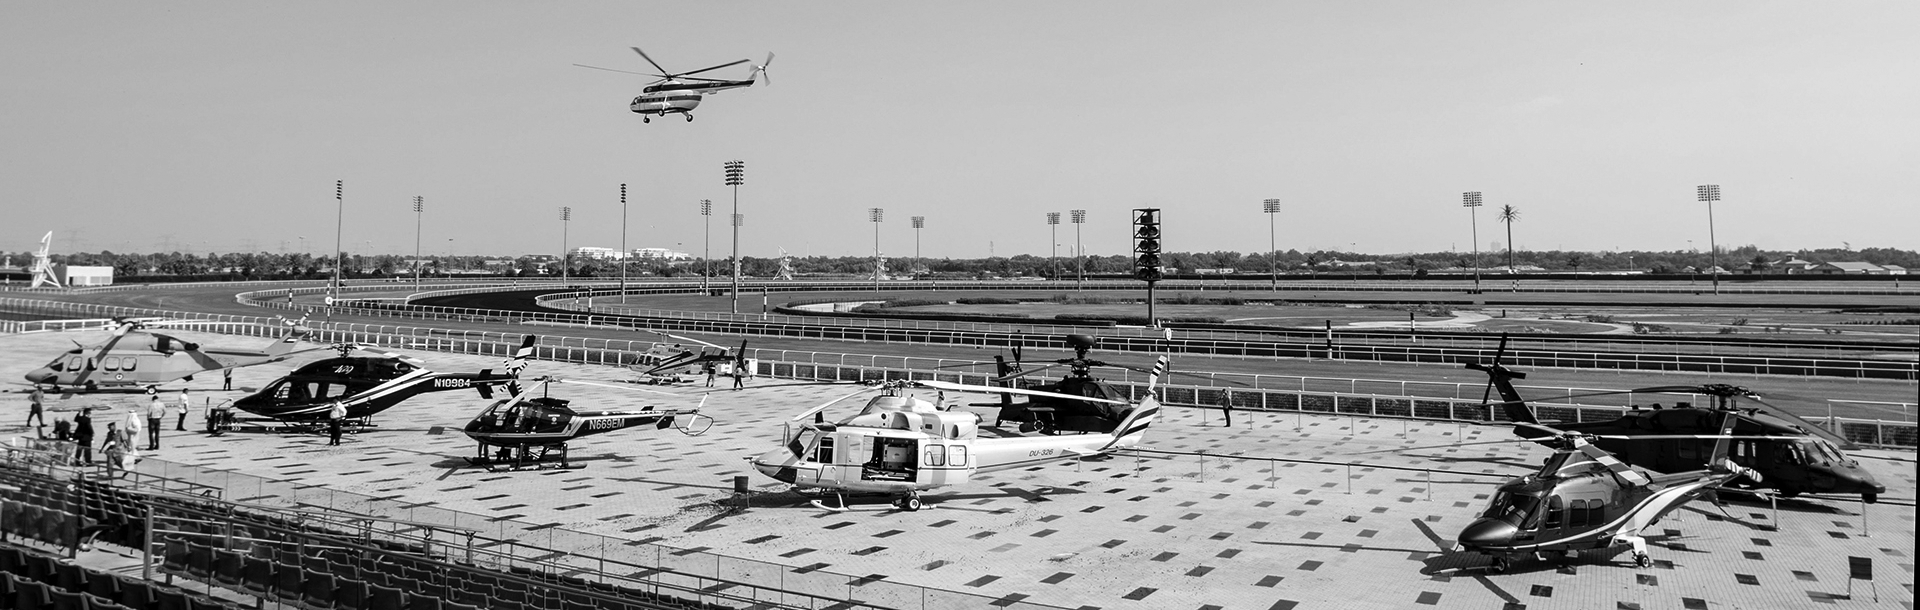 Helishow with helicopter rappelling at the Meydan